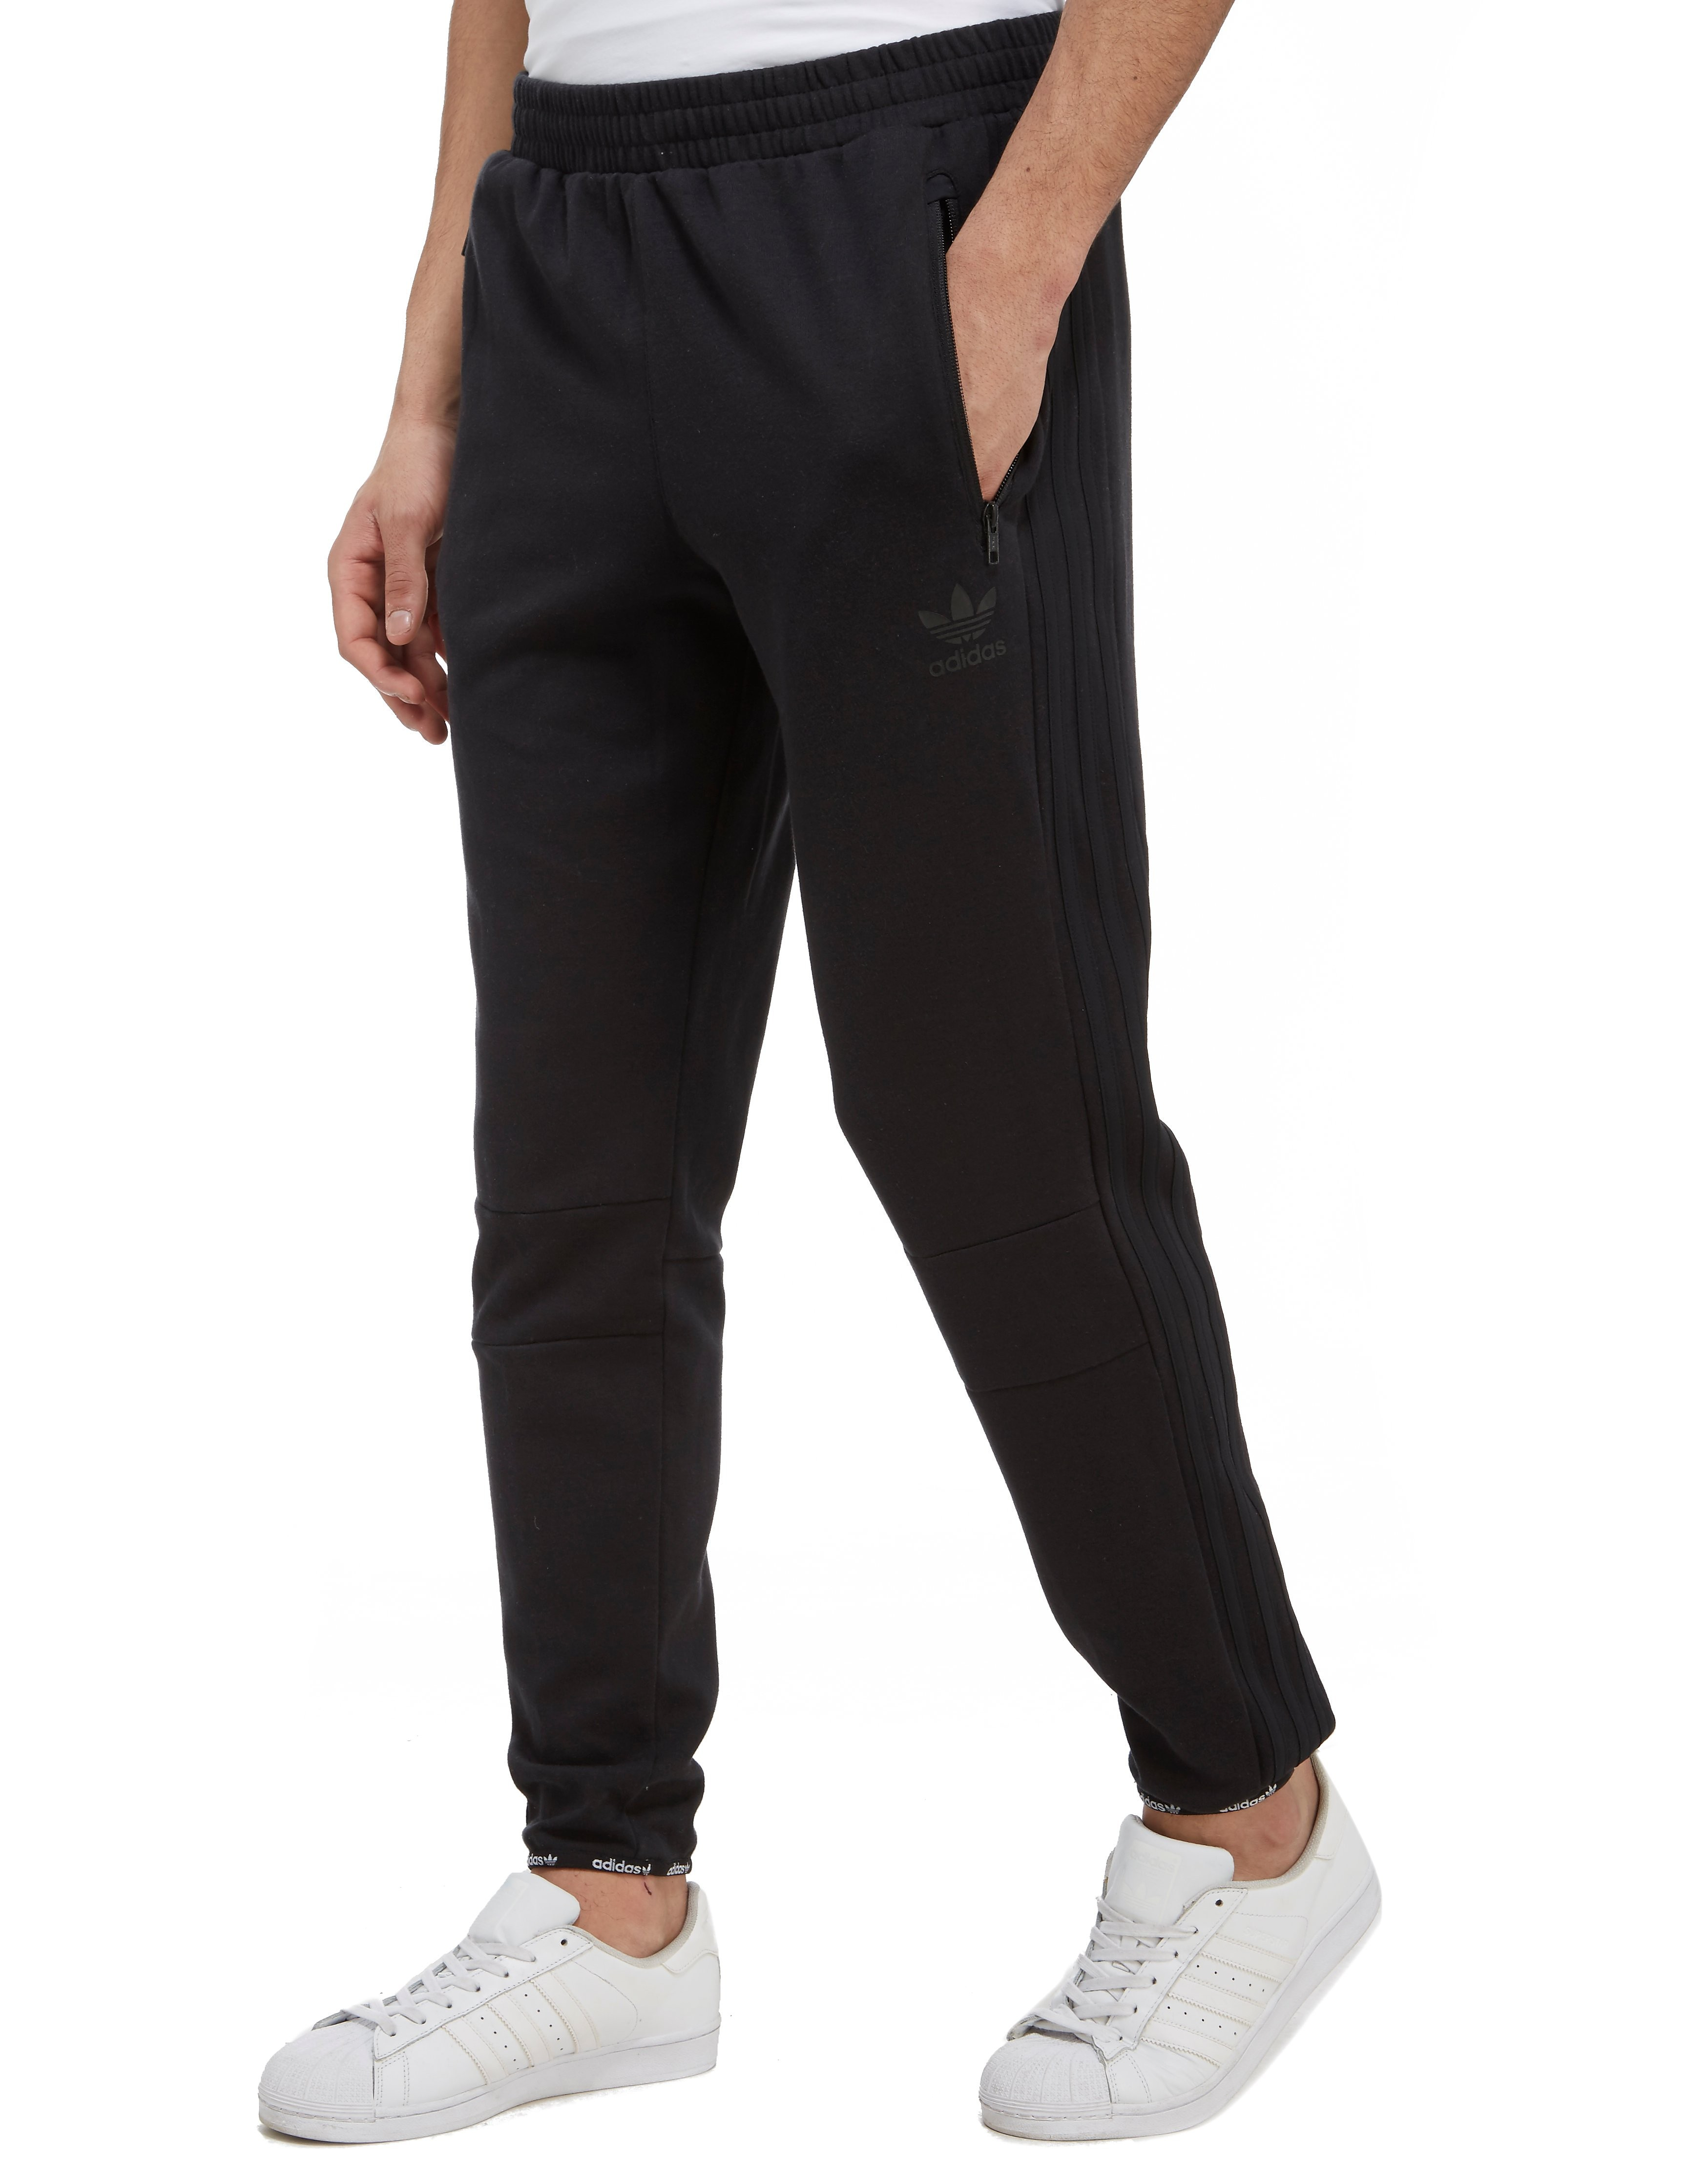 adidas Originals Nomad Tech Pants